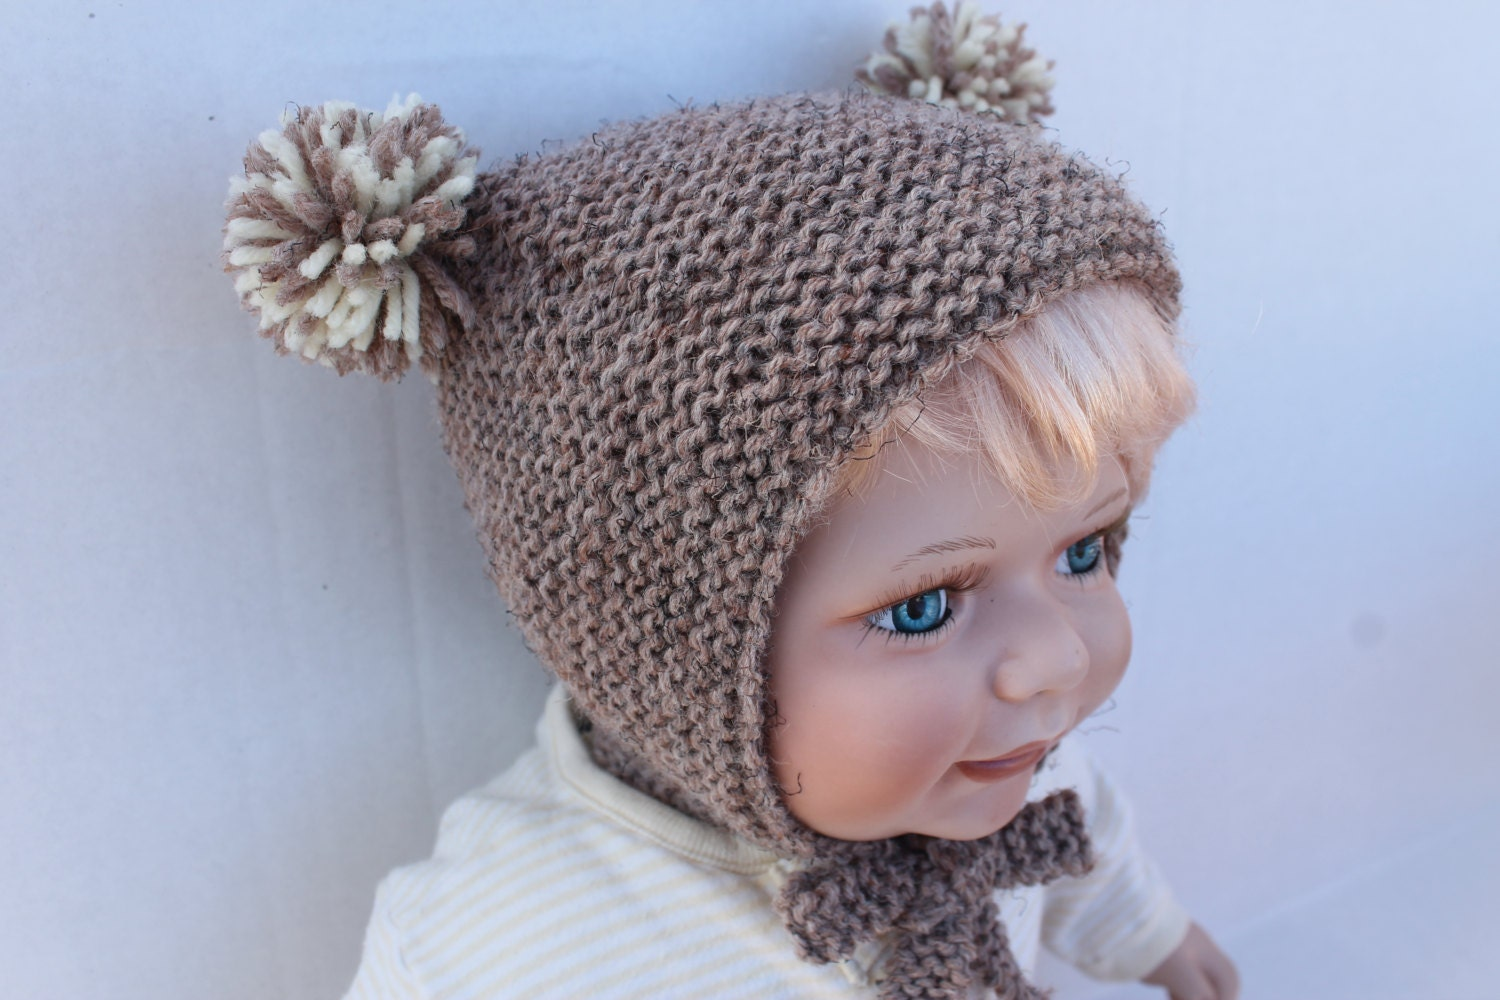 Knit Teddy Bear Baby Hat. 6 months. Brown Knit Baby Hat. Kand